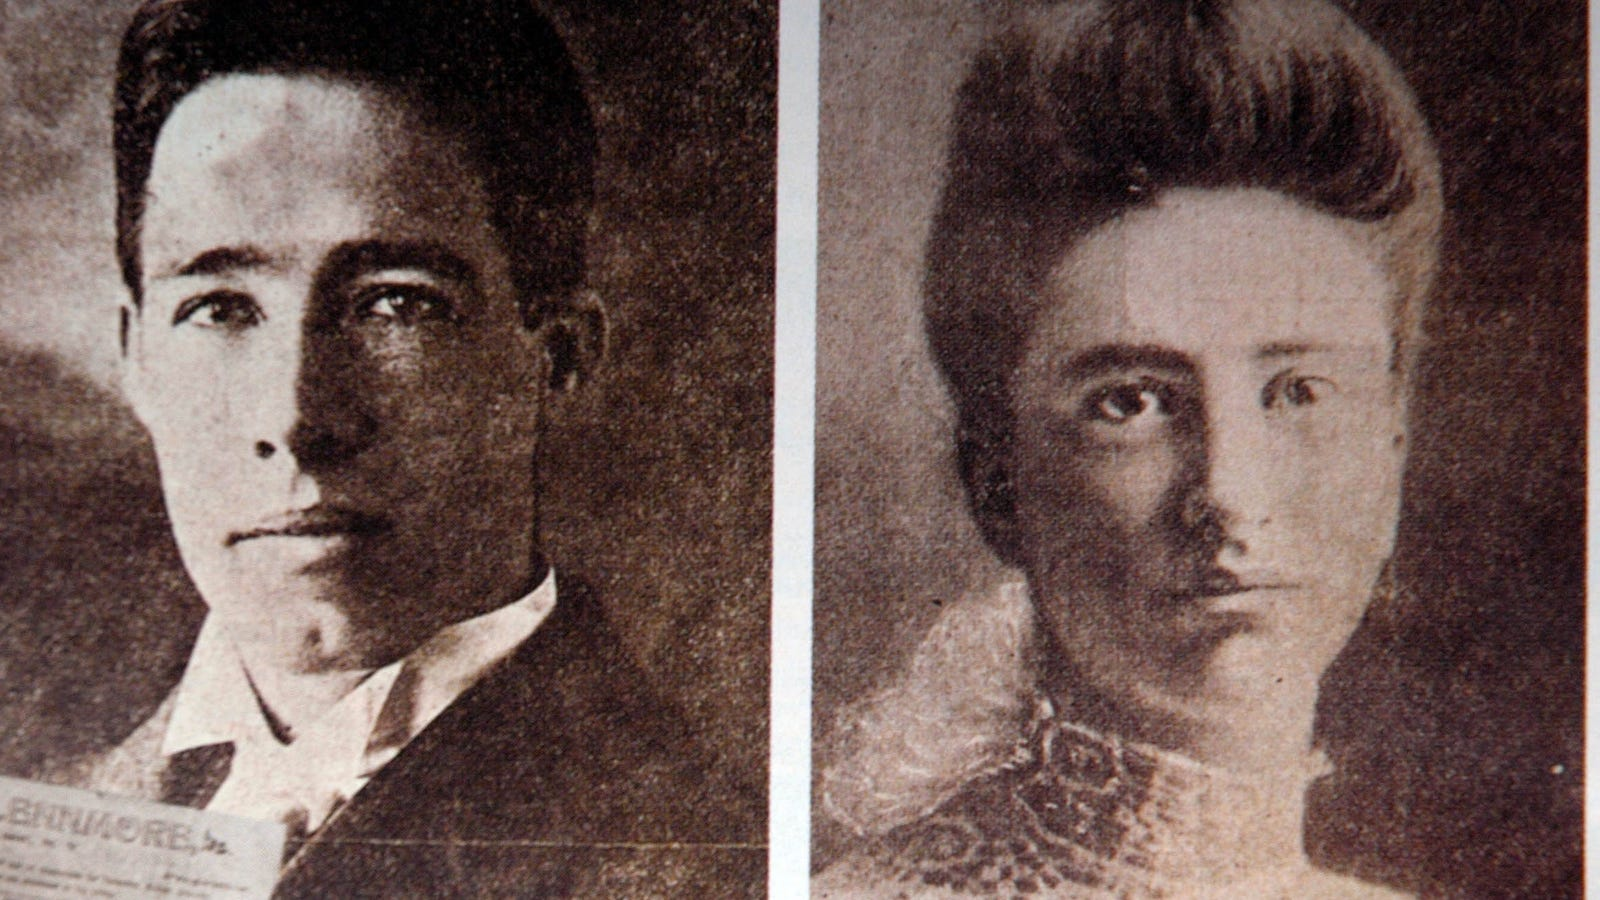 5 Gruesome Real-Life Murders That Inspired Spooky Ghost Stories